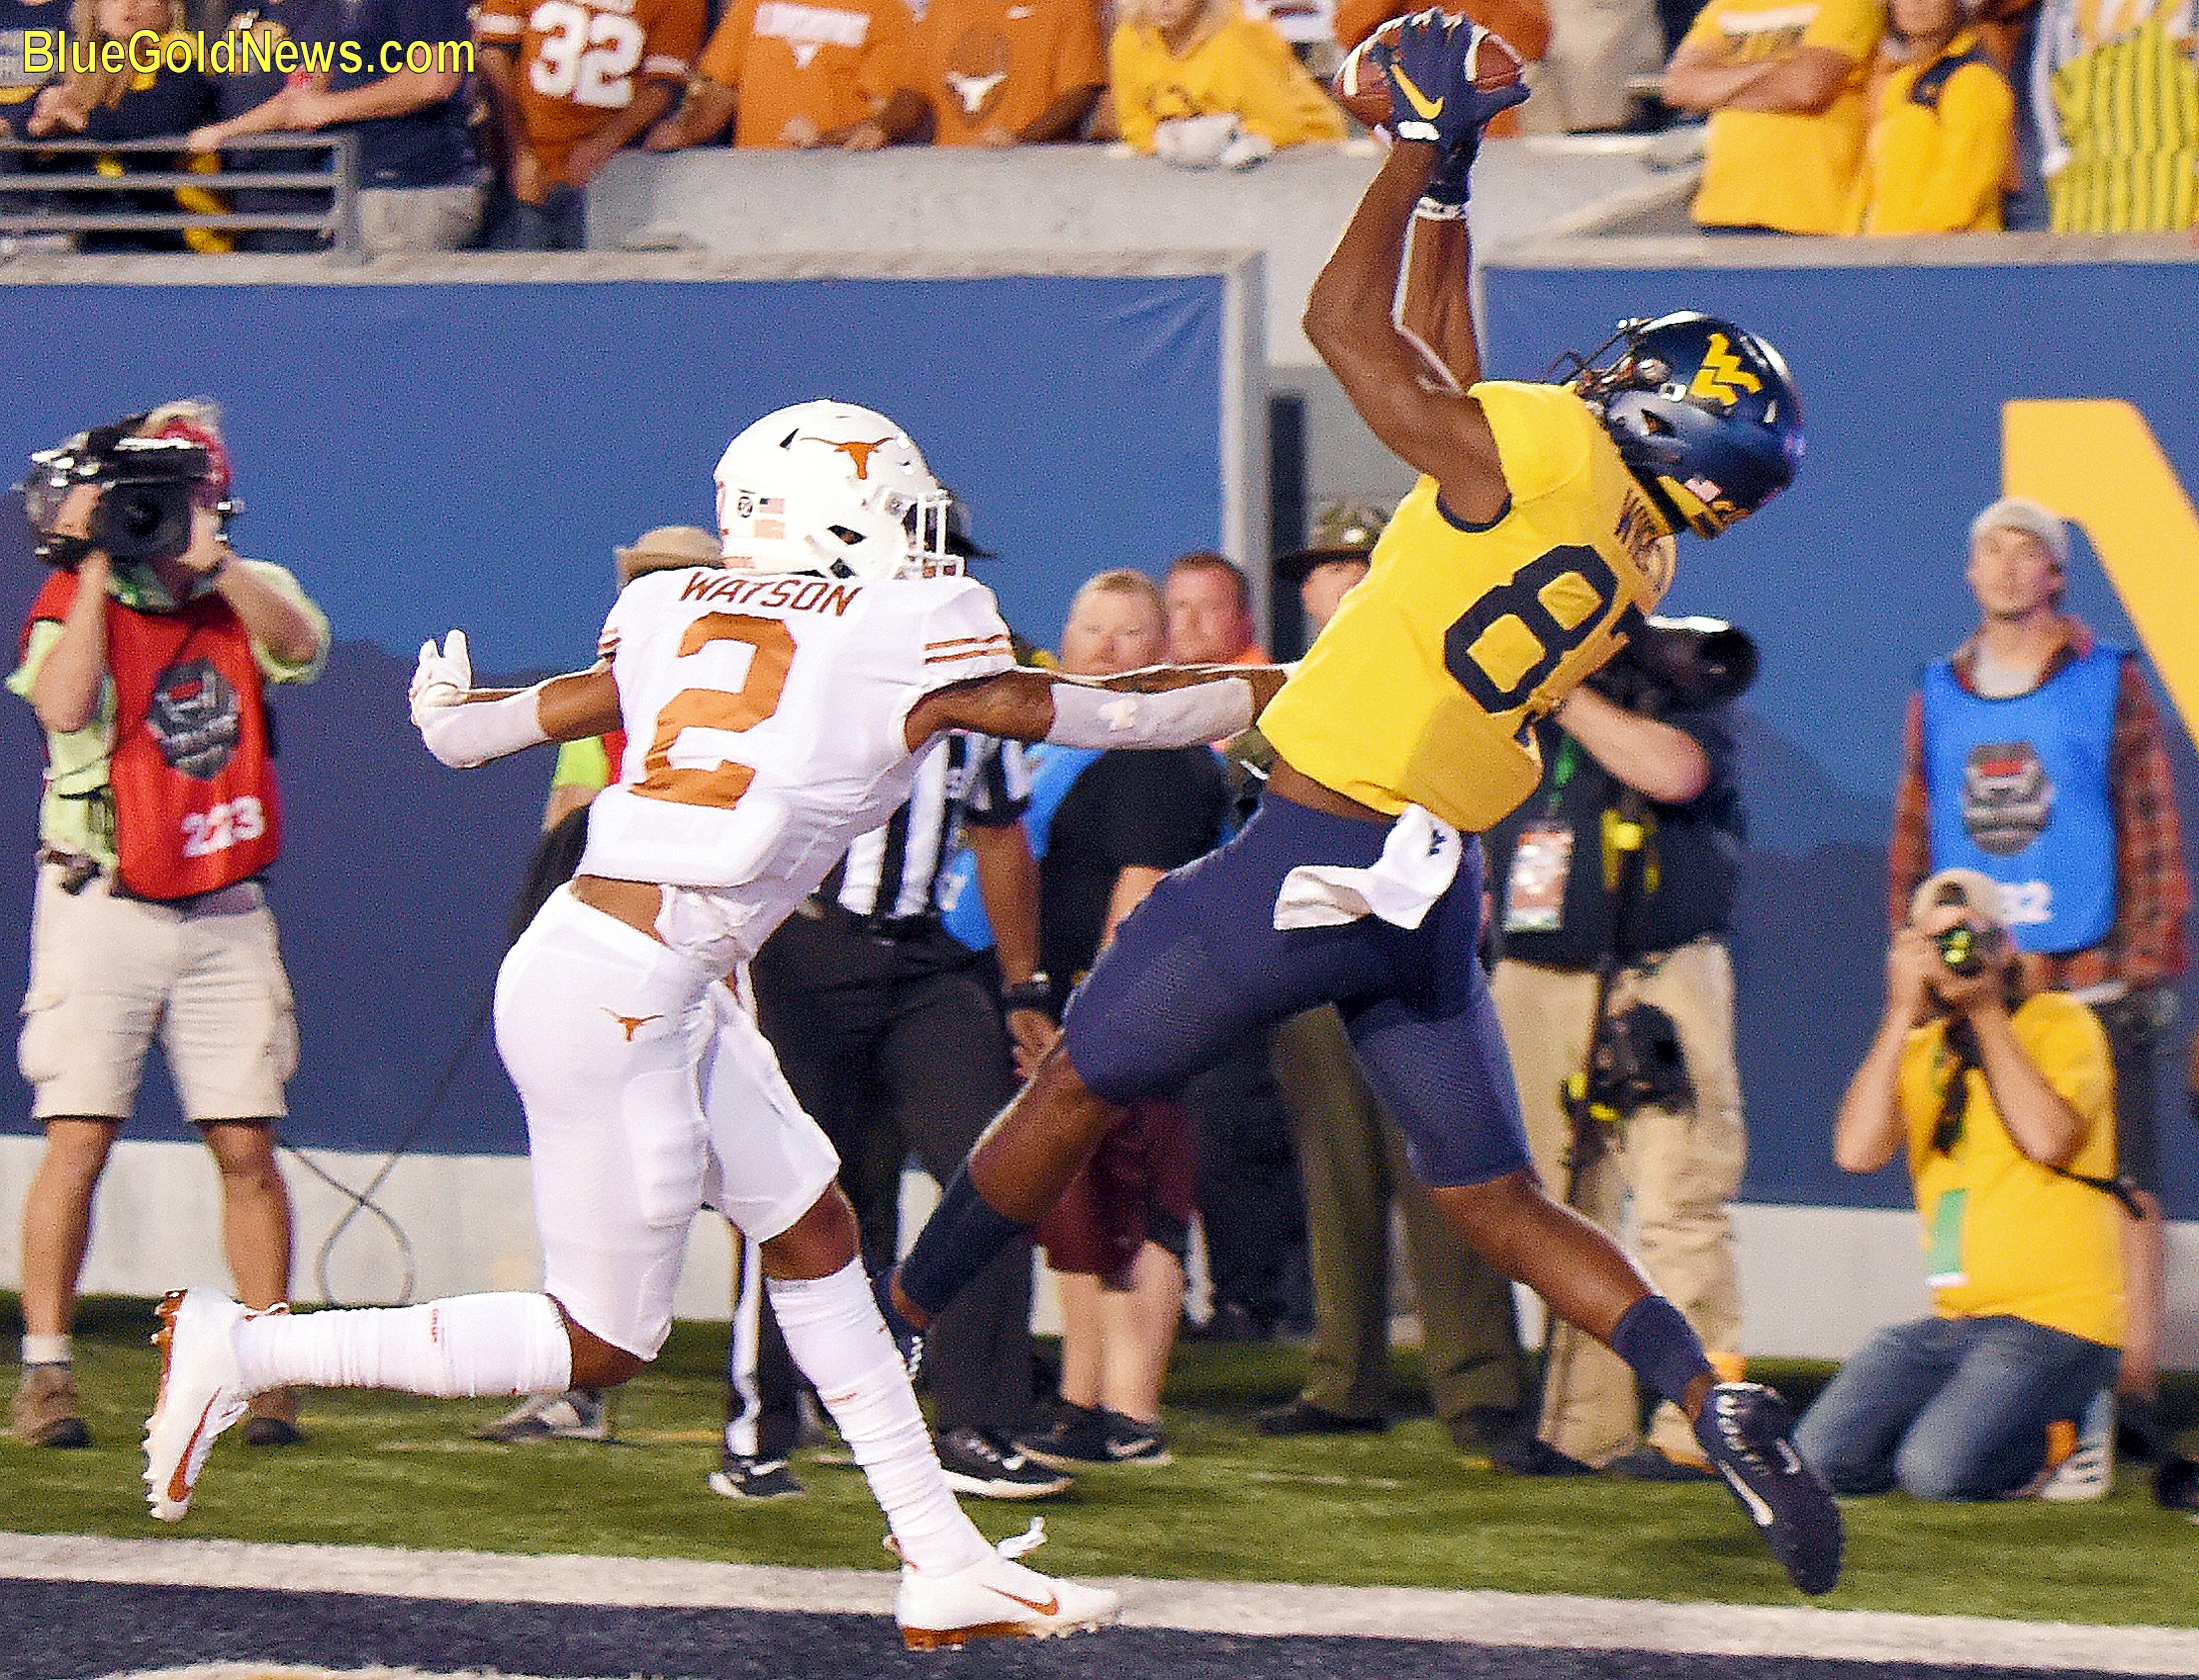 West Virginia receiver Bryce Wheaton hauls in a touchdown pass